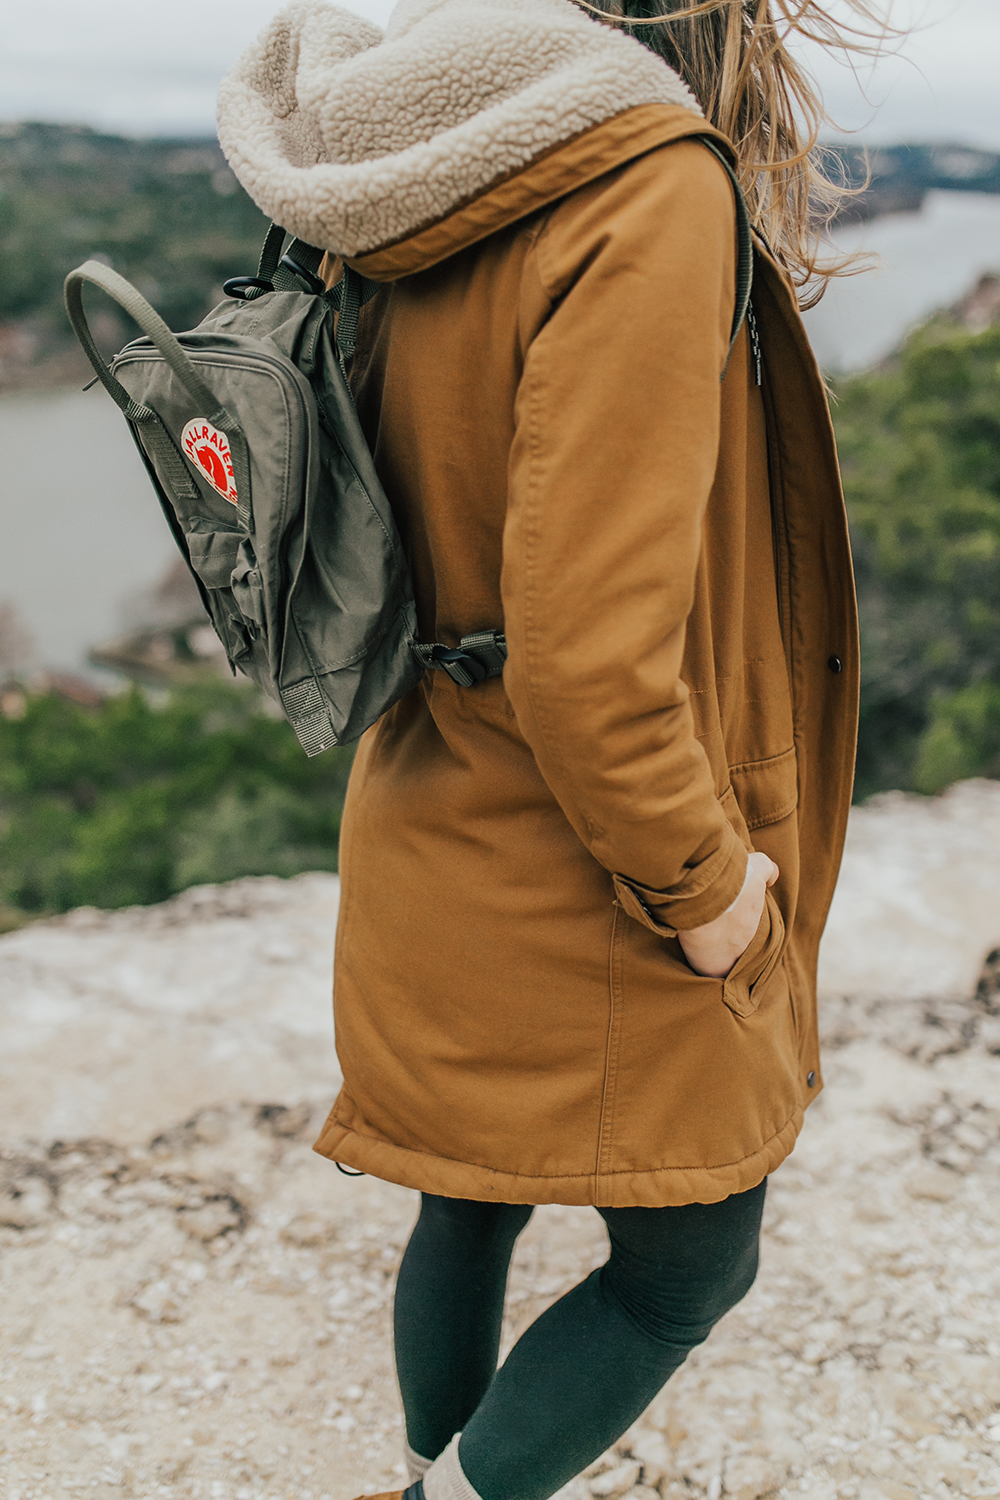 livvyland-blog-olivia-watson-austin-texas-fashion-lifestyle-blogger-patagonia-prarie-dawn-jacket-winter-hike-mount-bonnell-2